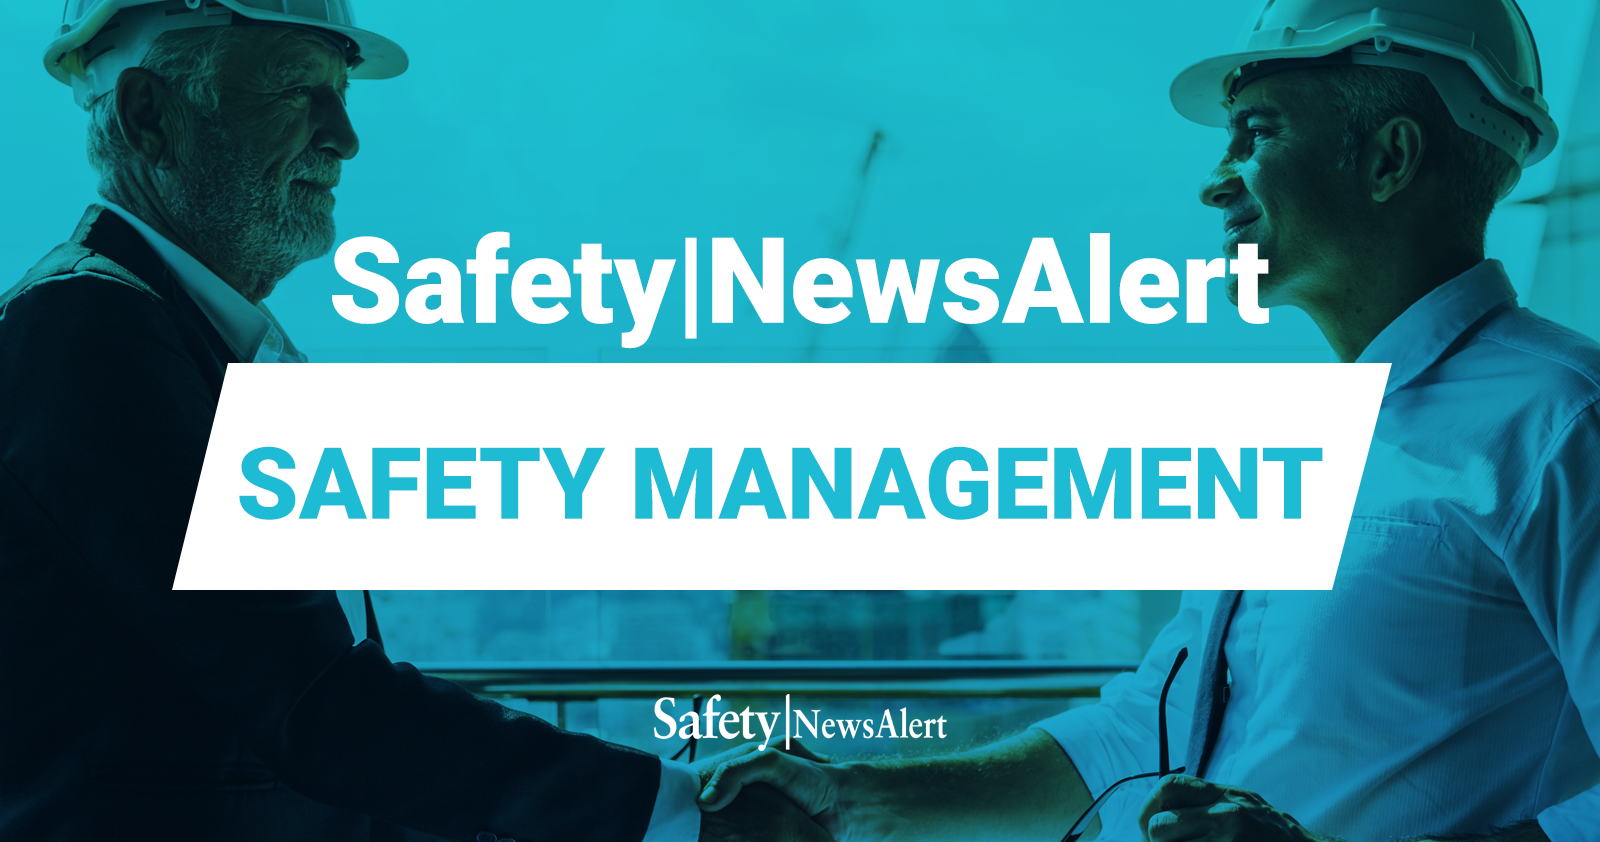 20 safety conferences Latest changes, plans   Safety News Alert